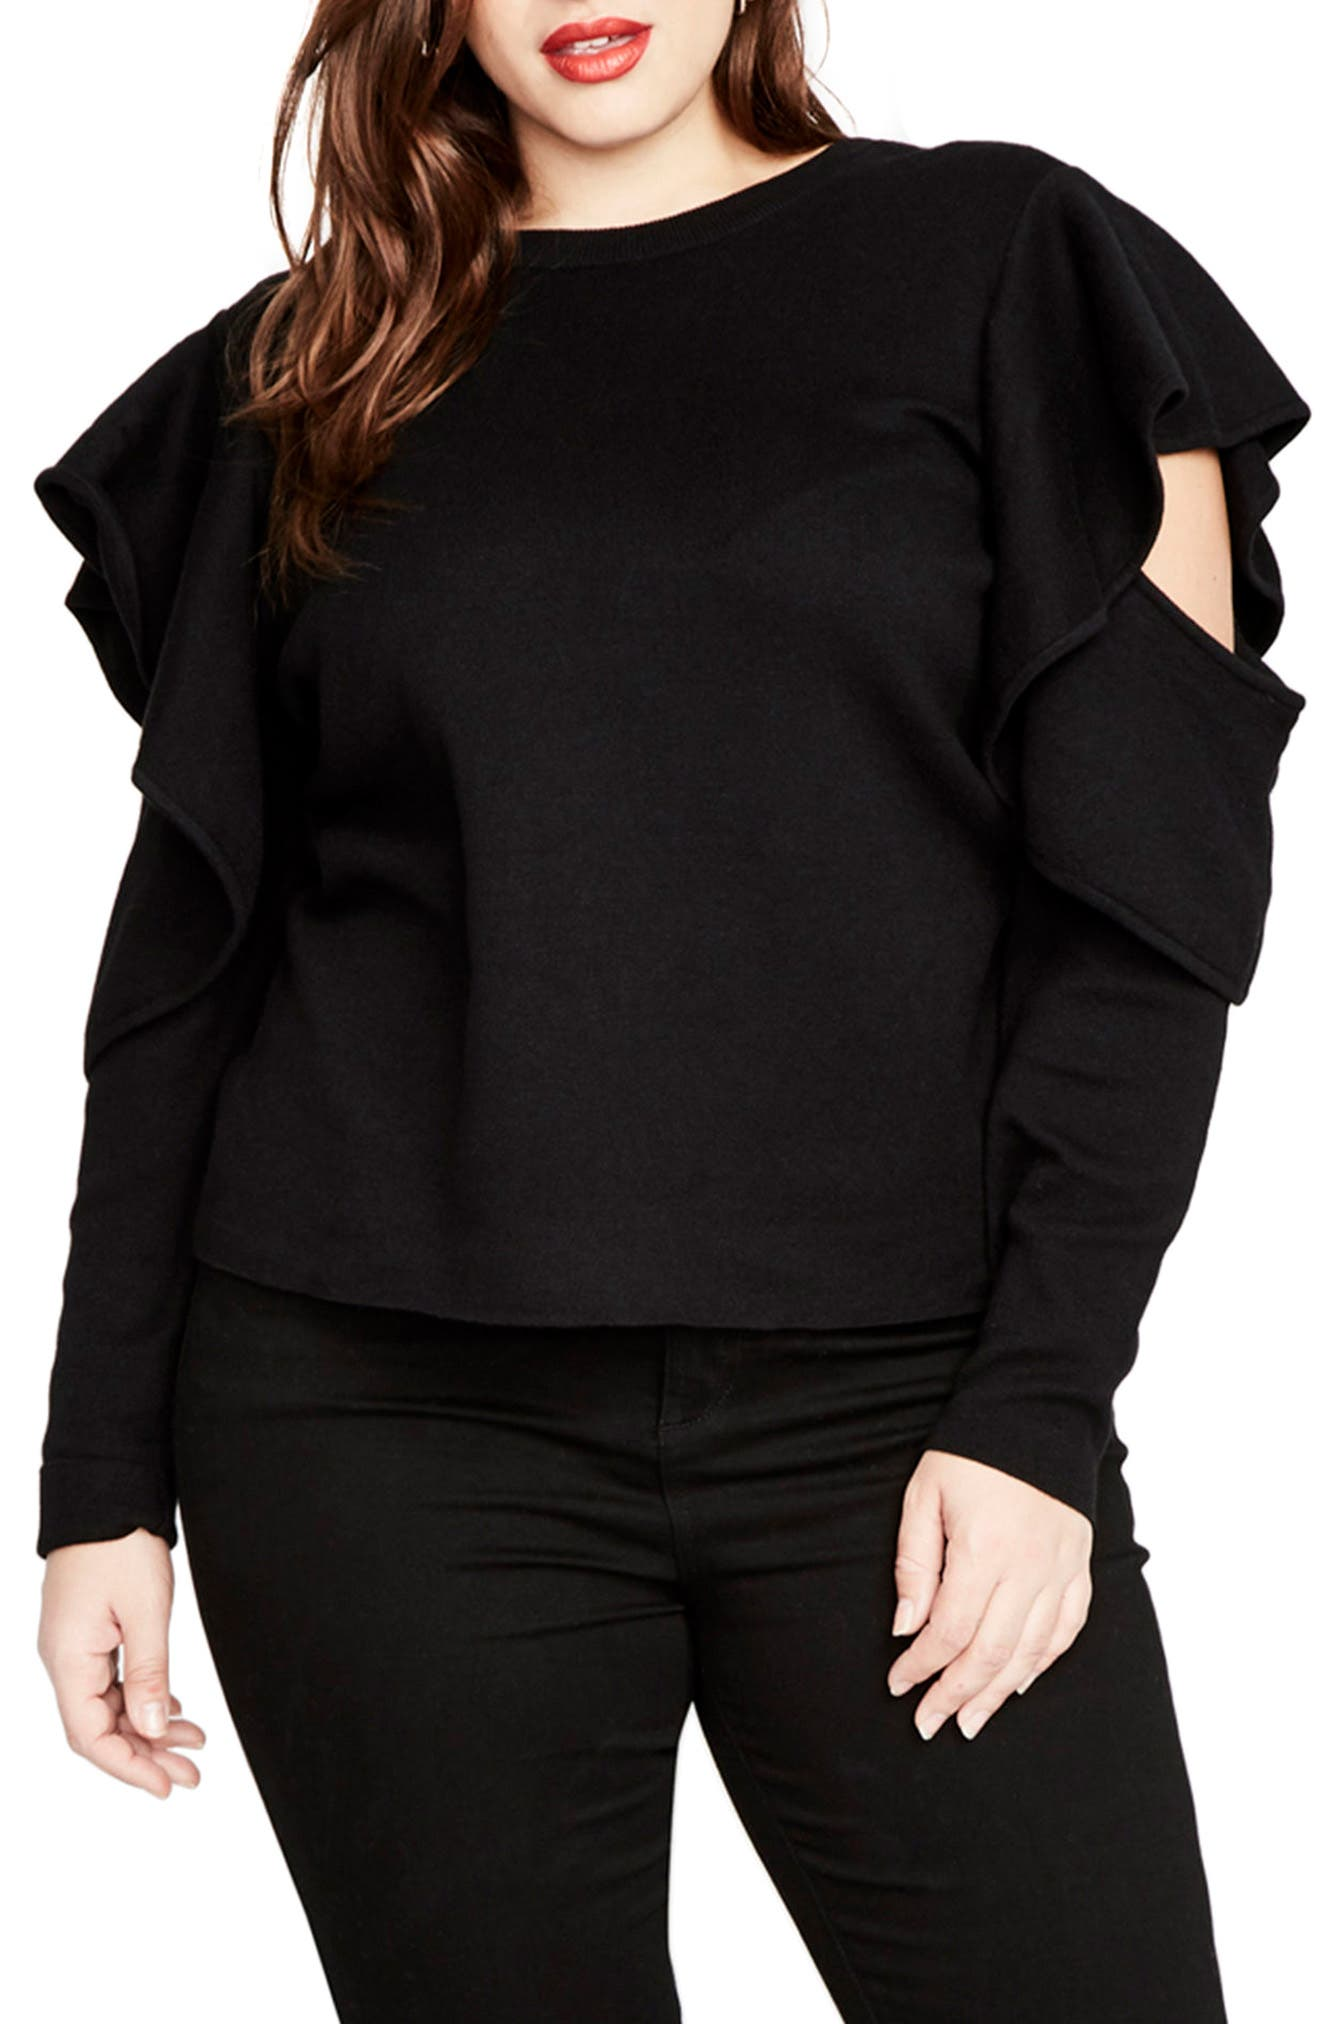 Ruffle Sleeve Sweater,                             Main thumbnail 1, color,                             Black